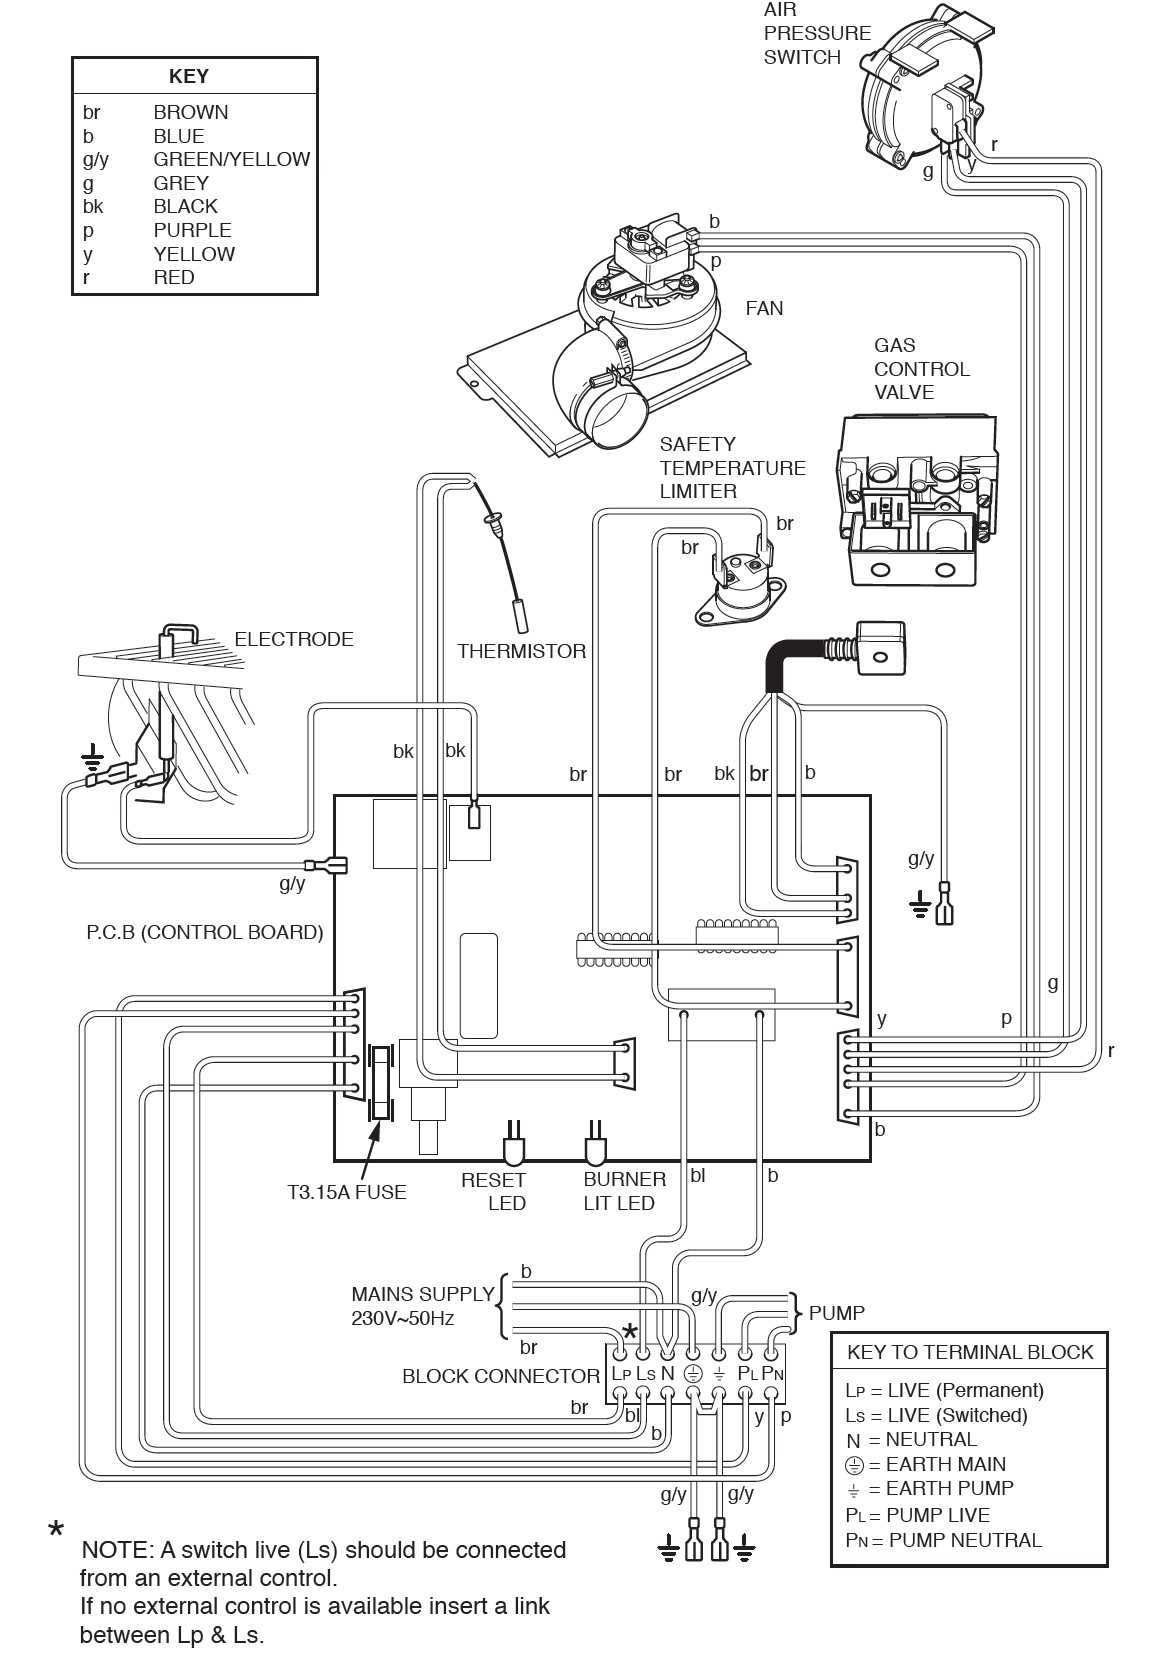 wiring diagram for a pressure switch